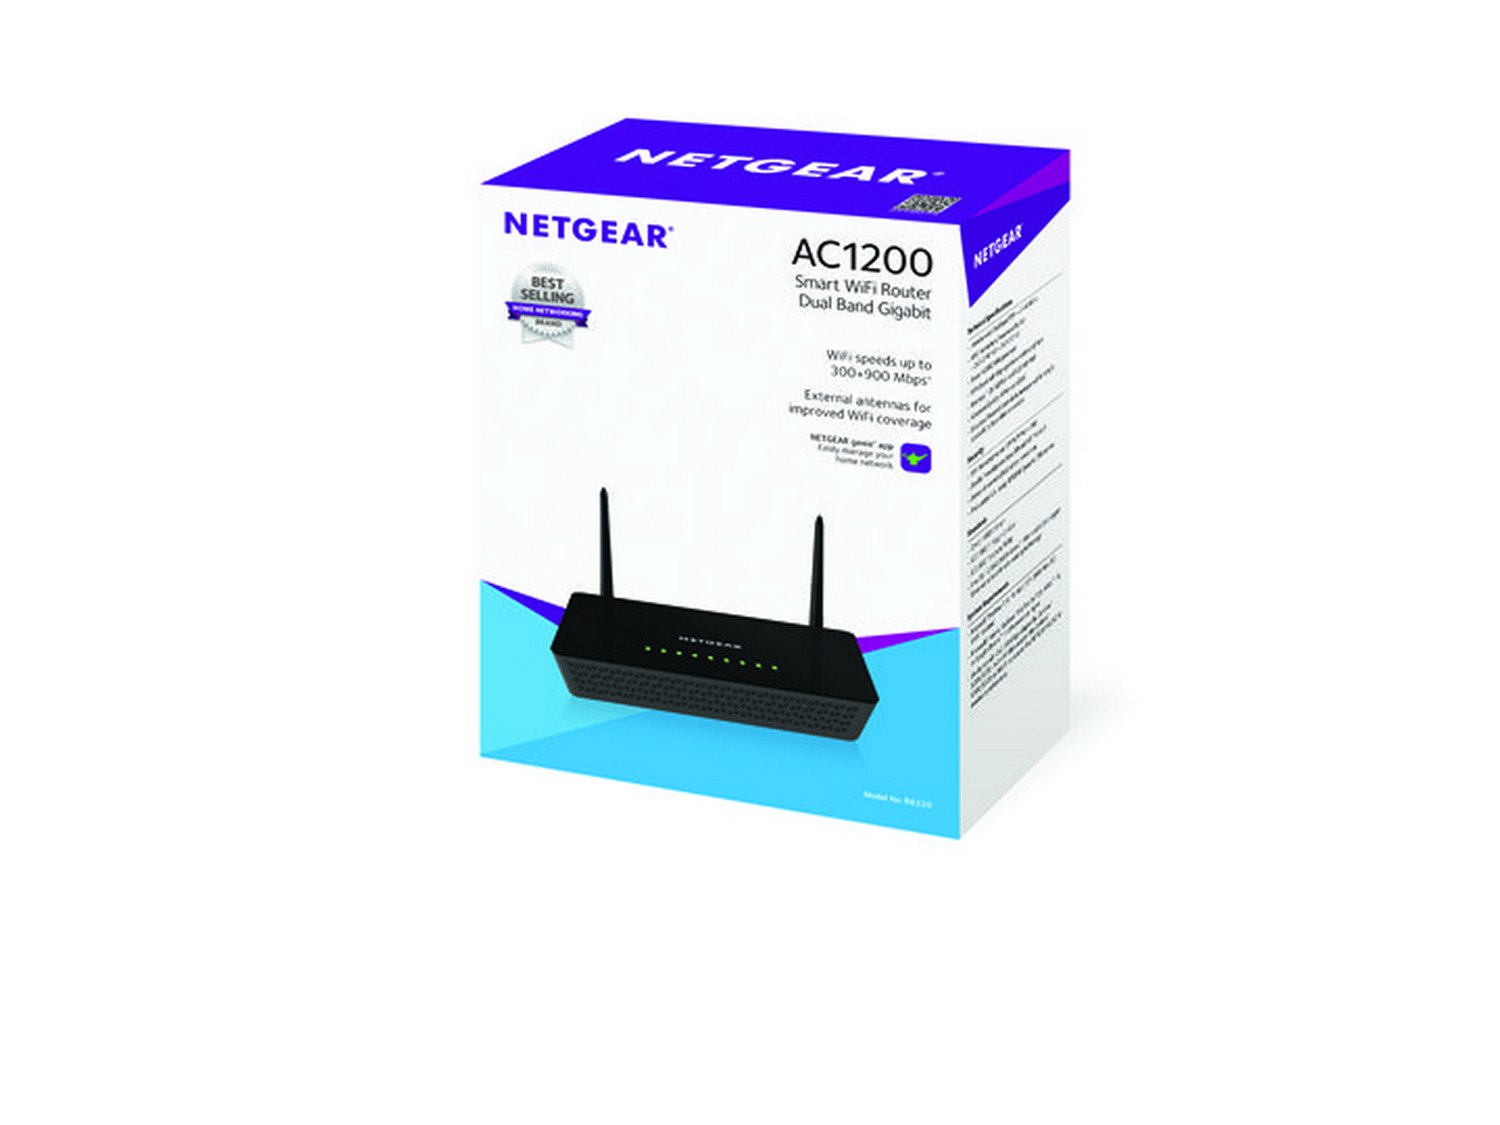 R6020 wifi routers networking home netgear - Netgear R6220 Ac 1200 Smart Wifi Router With External Antennas Buy Netgear R6220 Ac 1200 Smart Wifi Router With External Antennas Online At Low Price In